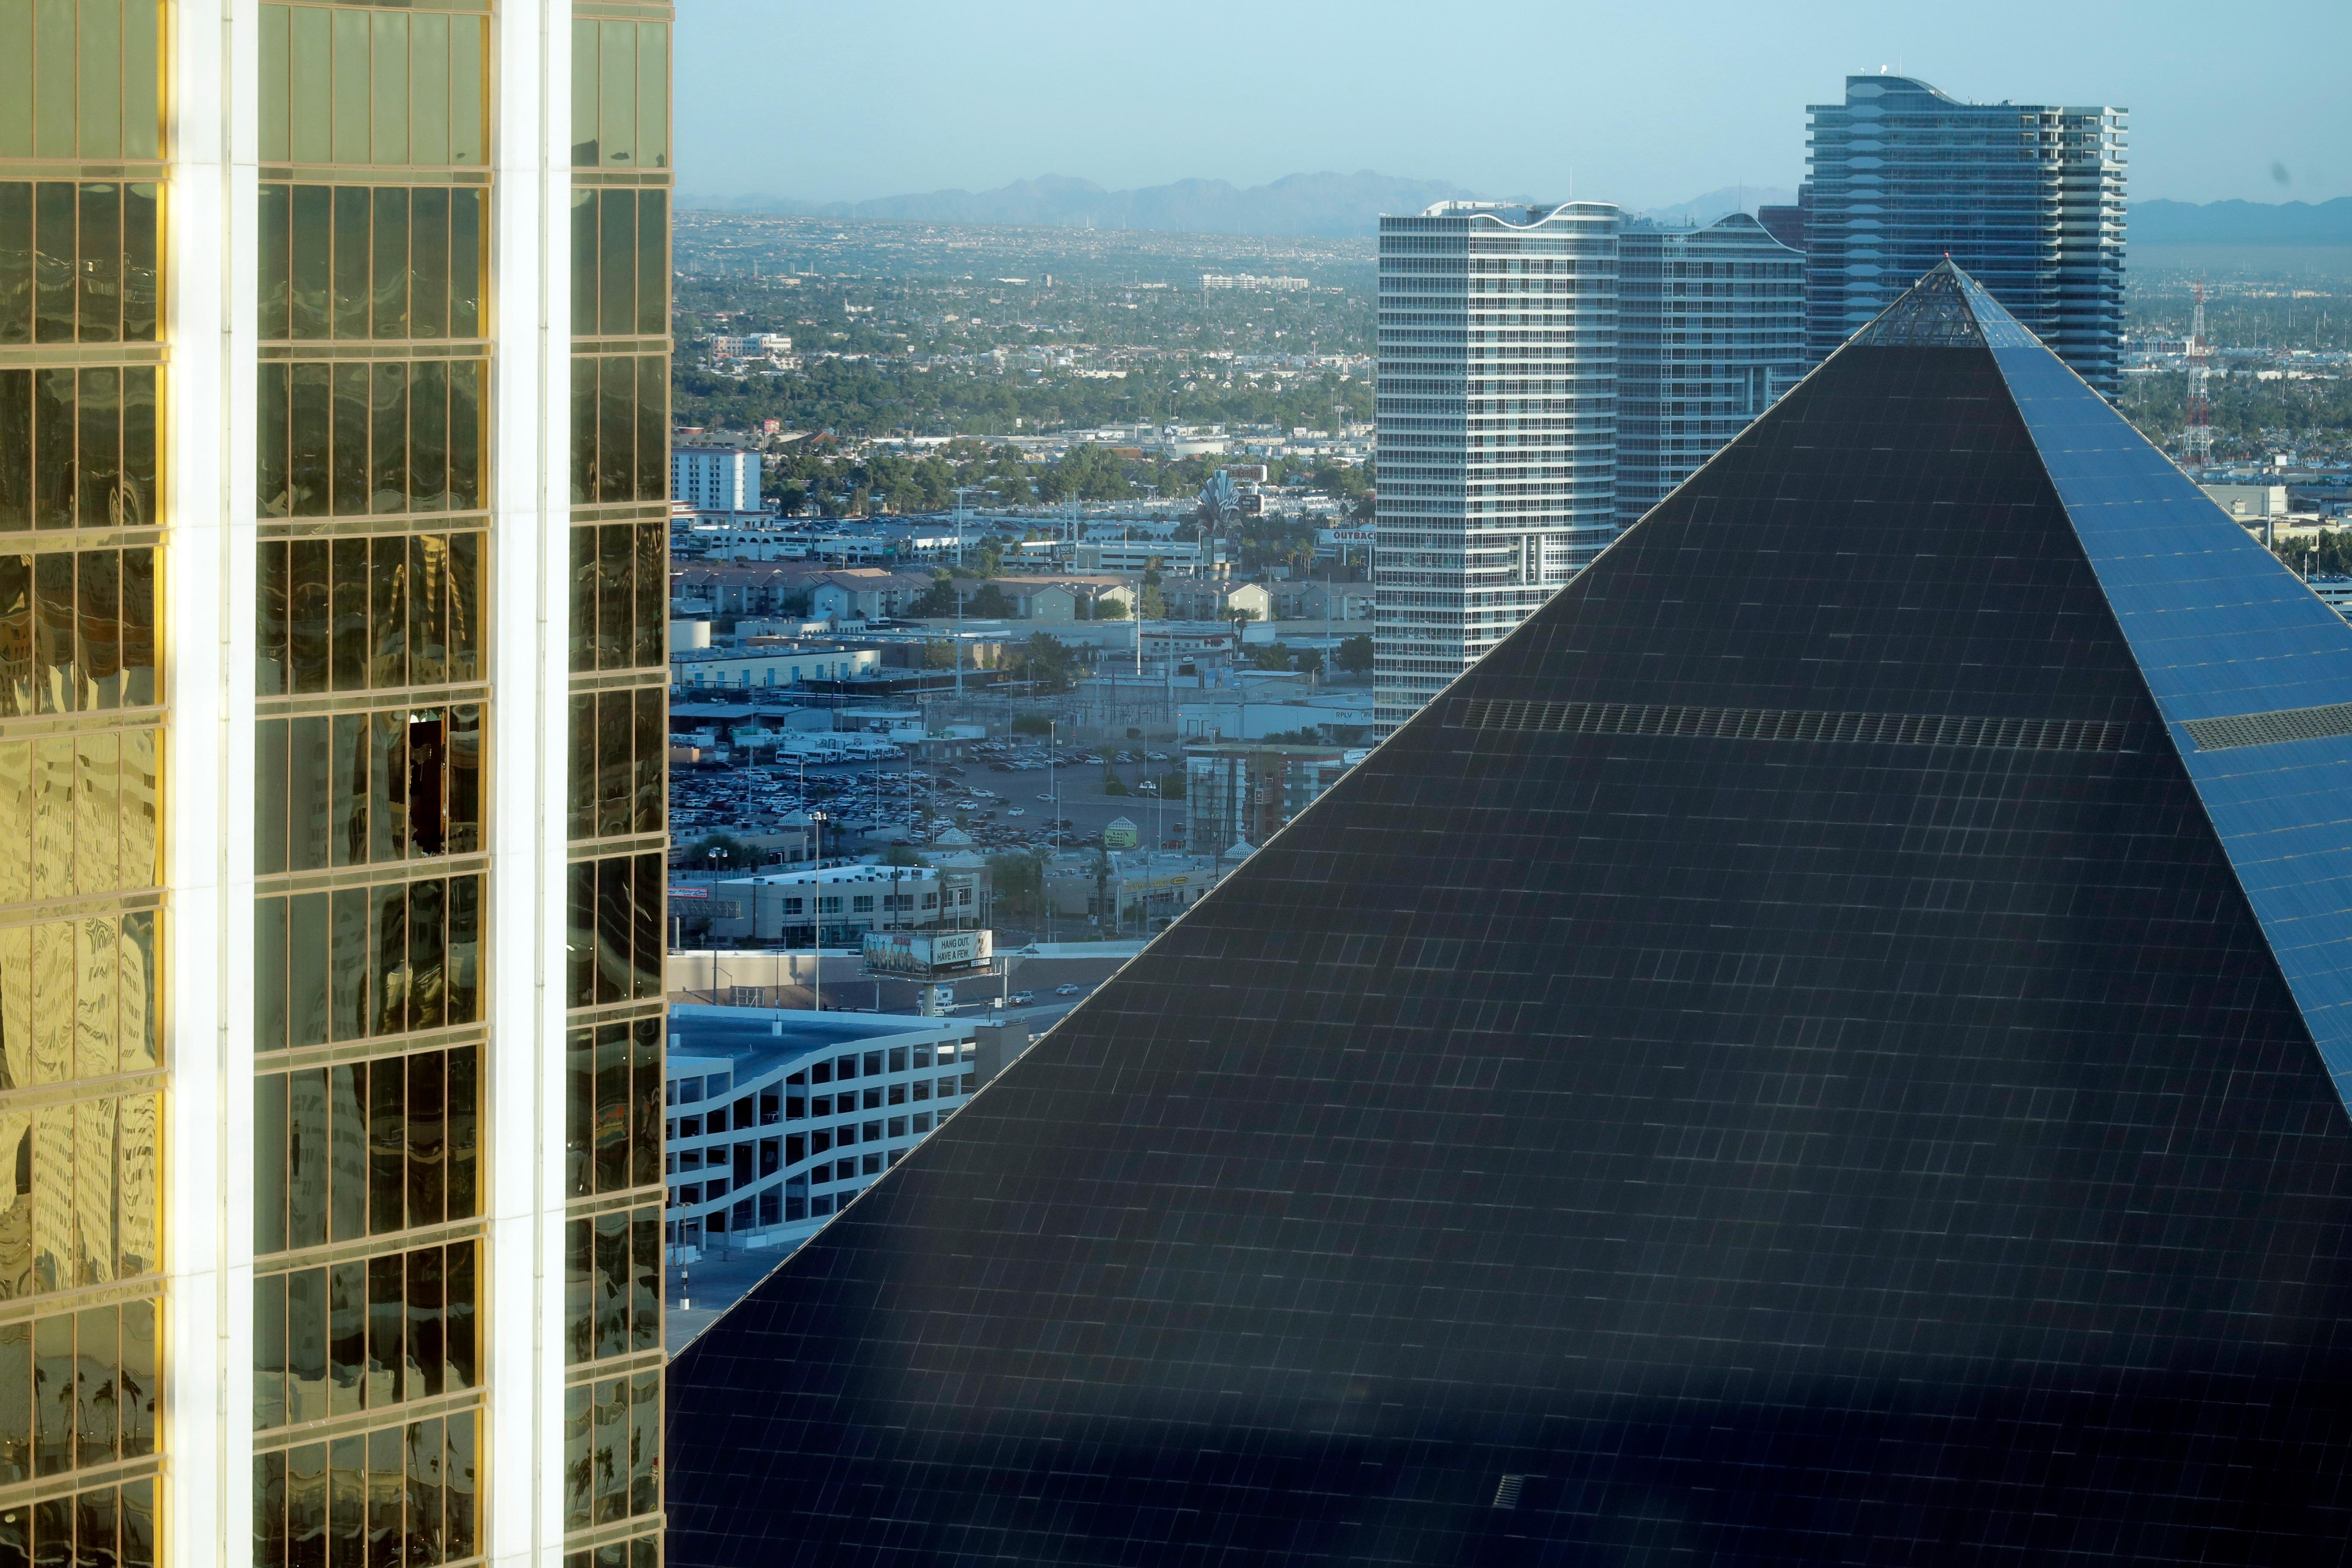 The Mandalay Bay Resort and Casino, at left, with a broken window, stands next to the Luxor in Las Vegas, Tuesday, Oct. 3, 2017. Authorities said Stephen Craig Paddock broke windows on a high floor of the Mandalay Bay and began firing with a cache of weapons, killing dozens and injuring hundreds at a music festival at the grounds. (AP Photo/Marcio Jose Sanchez)